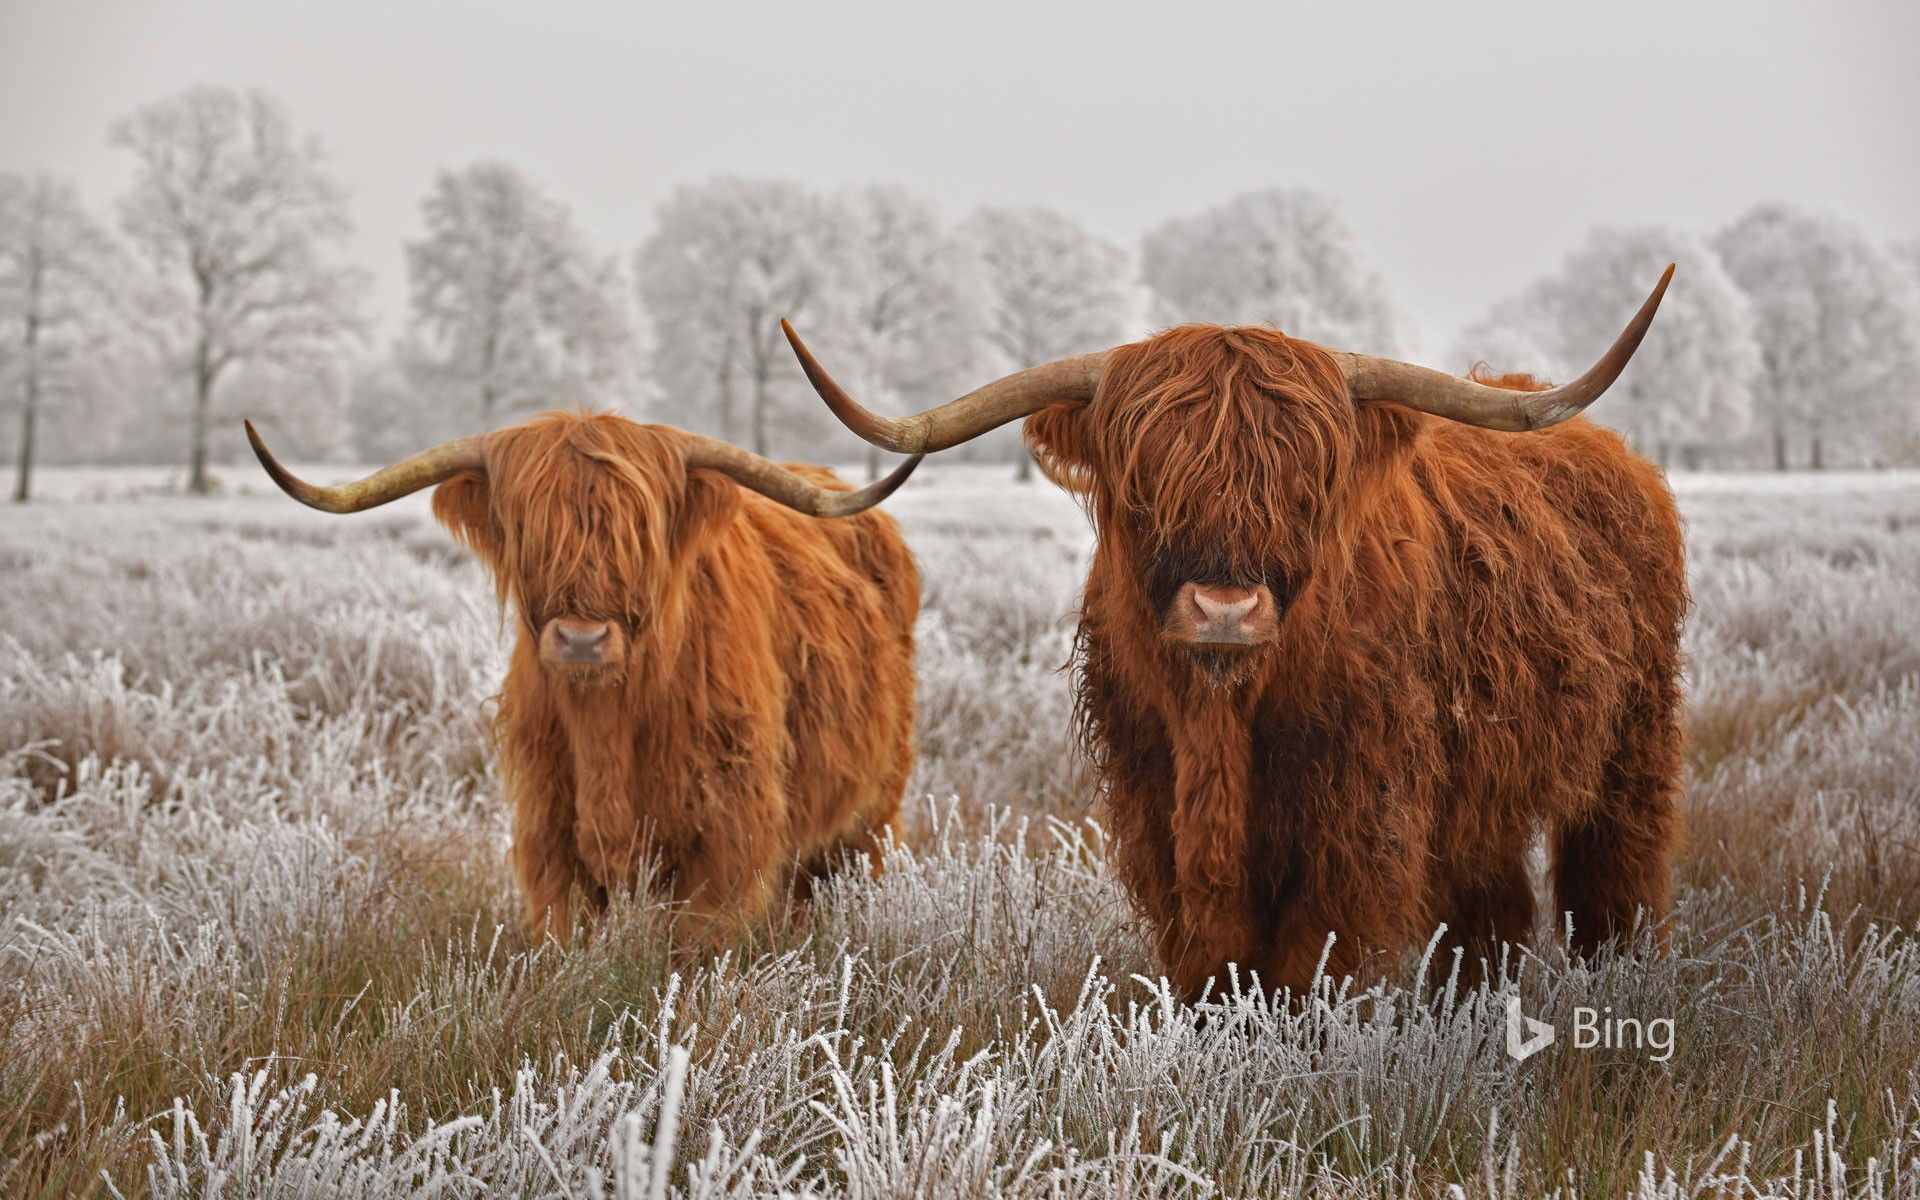 Highland cattle in Drenthe province, Netherlands